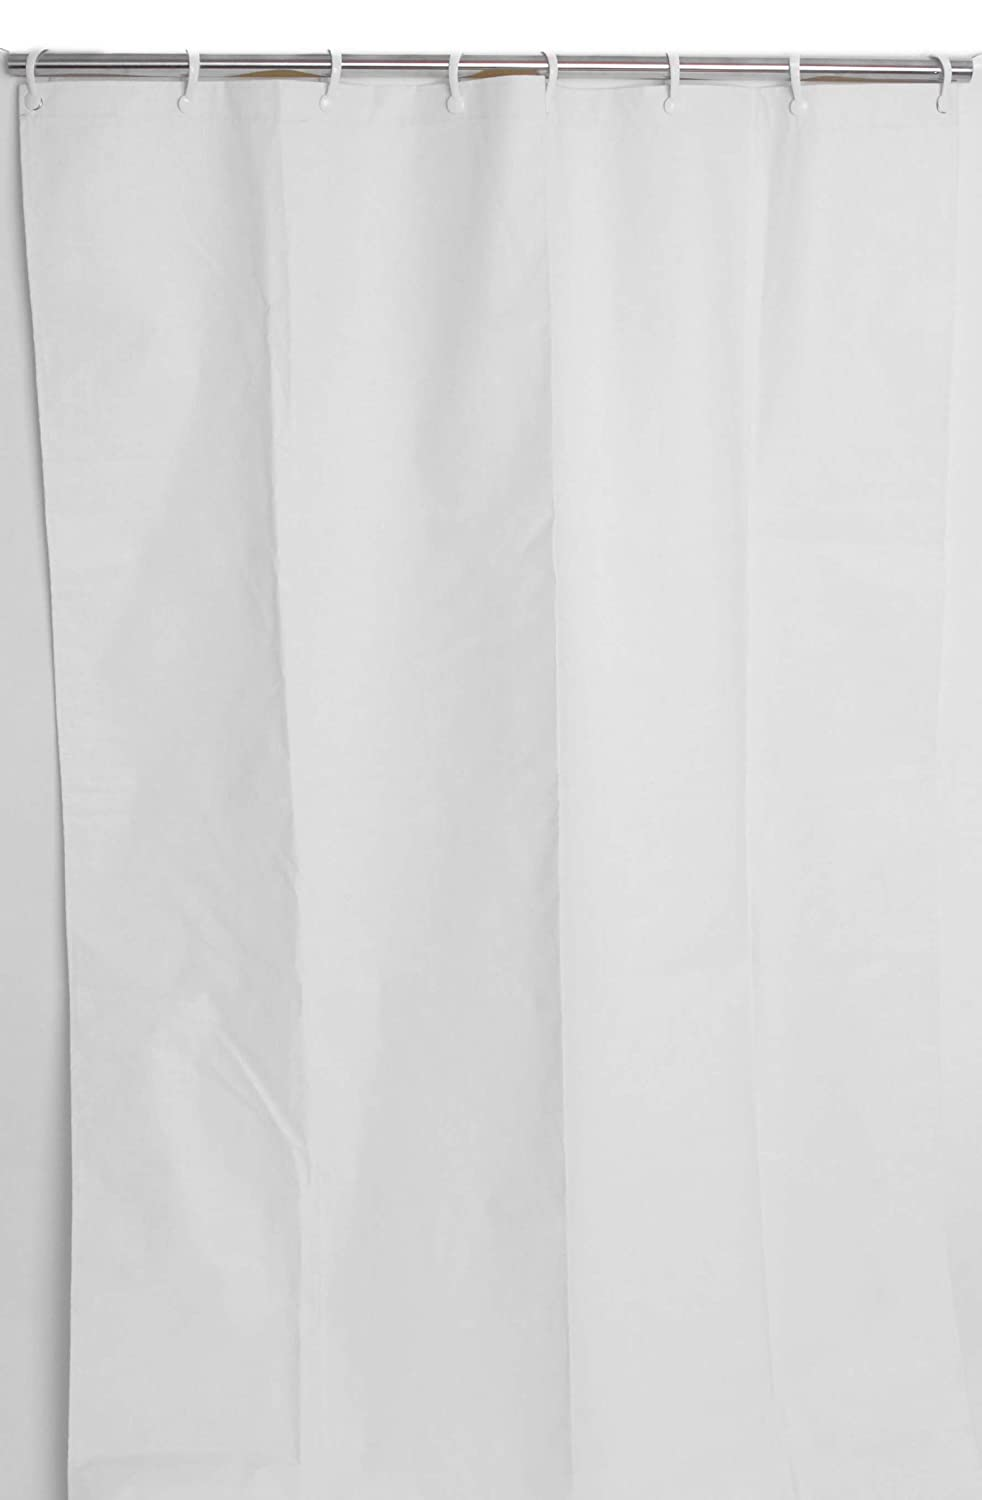 Amazon.com: CSI Bathware CUR54x74 P10 54 Inch X 74 Inch Heavy Duty  Commercial Shower Curtain Antistatic Staph Resistant Mold And Odor  Resistant, White, ...